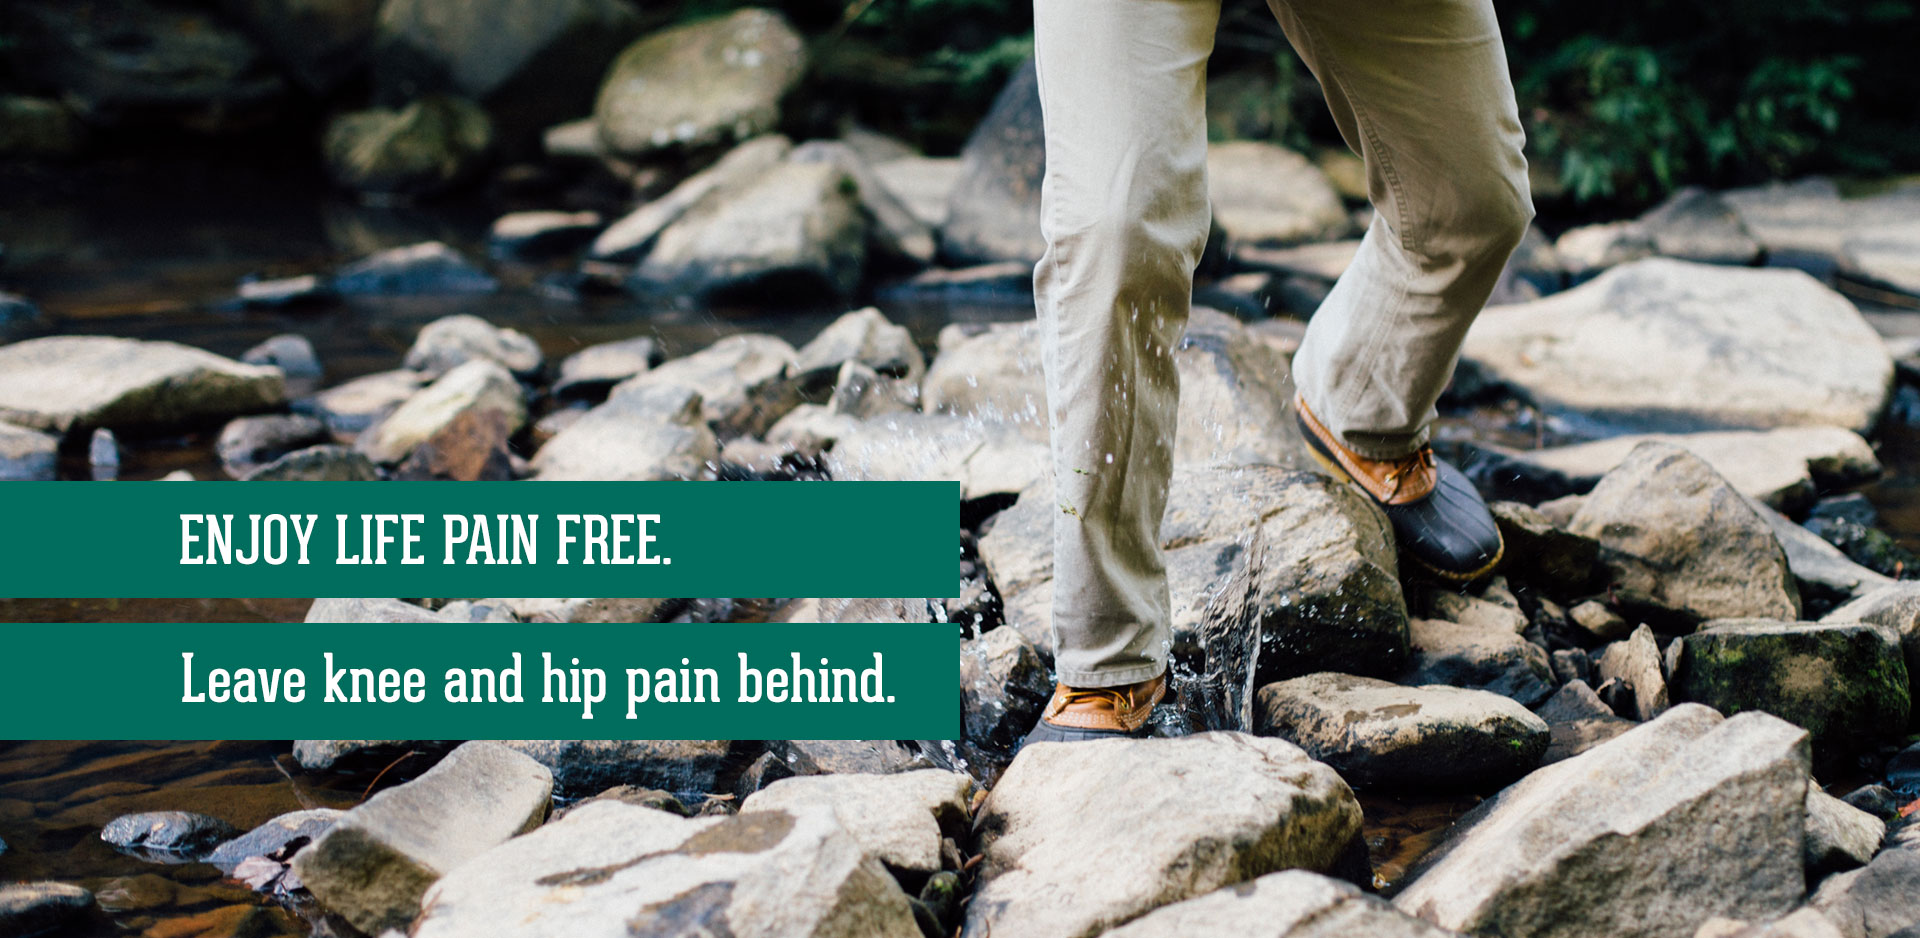 Man walking in water, banner says to enjoy life pain free with out knee of hip pain.